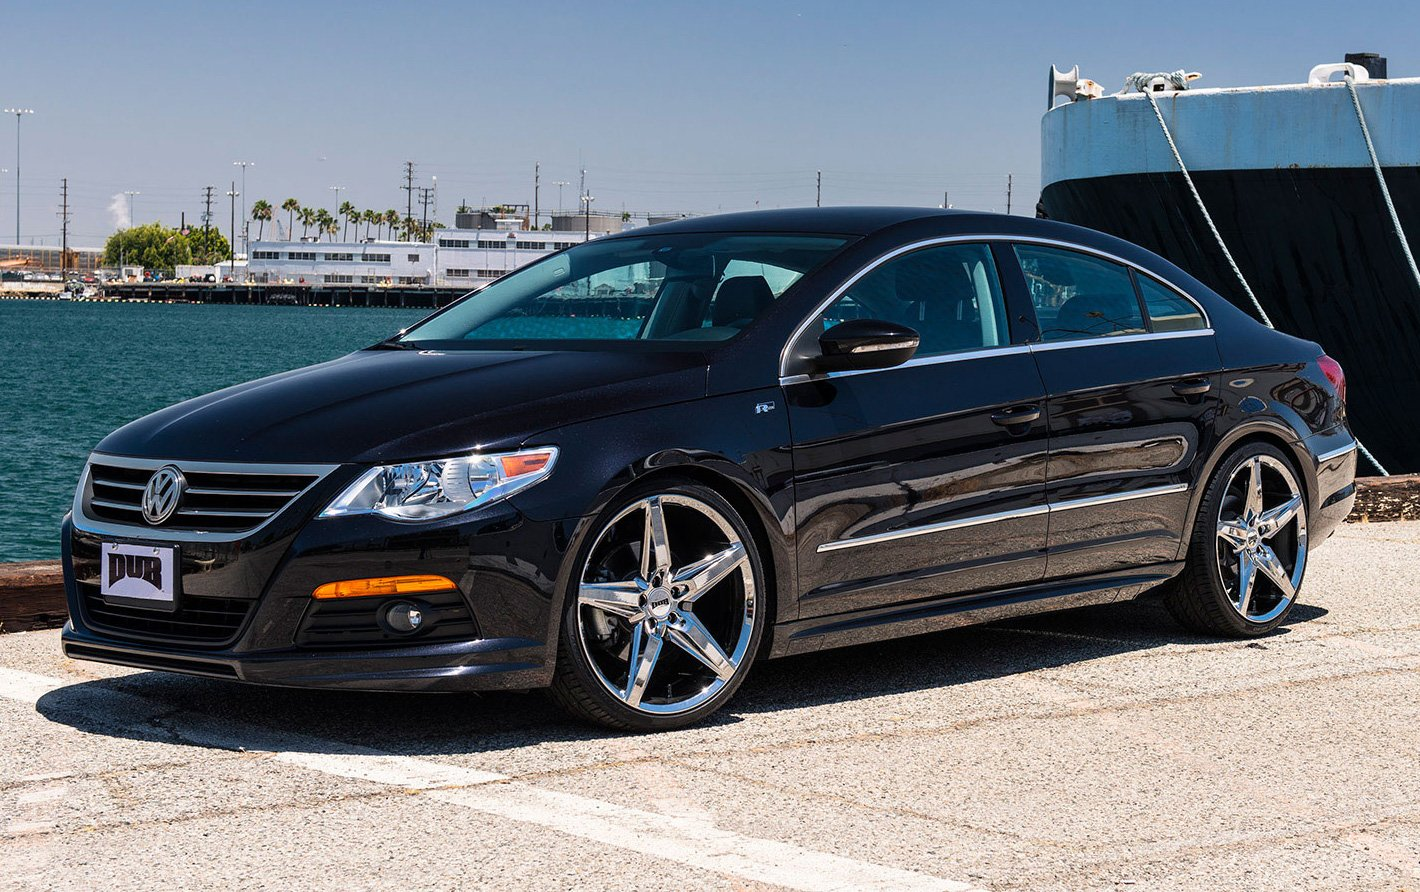 Volkswagen Cc Wheels Custom Rim And Tire Packages